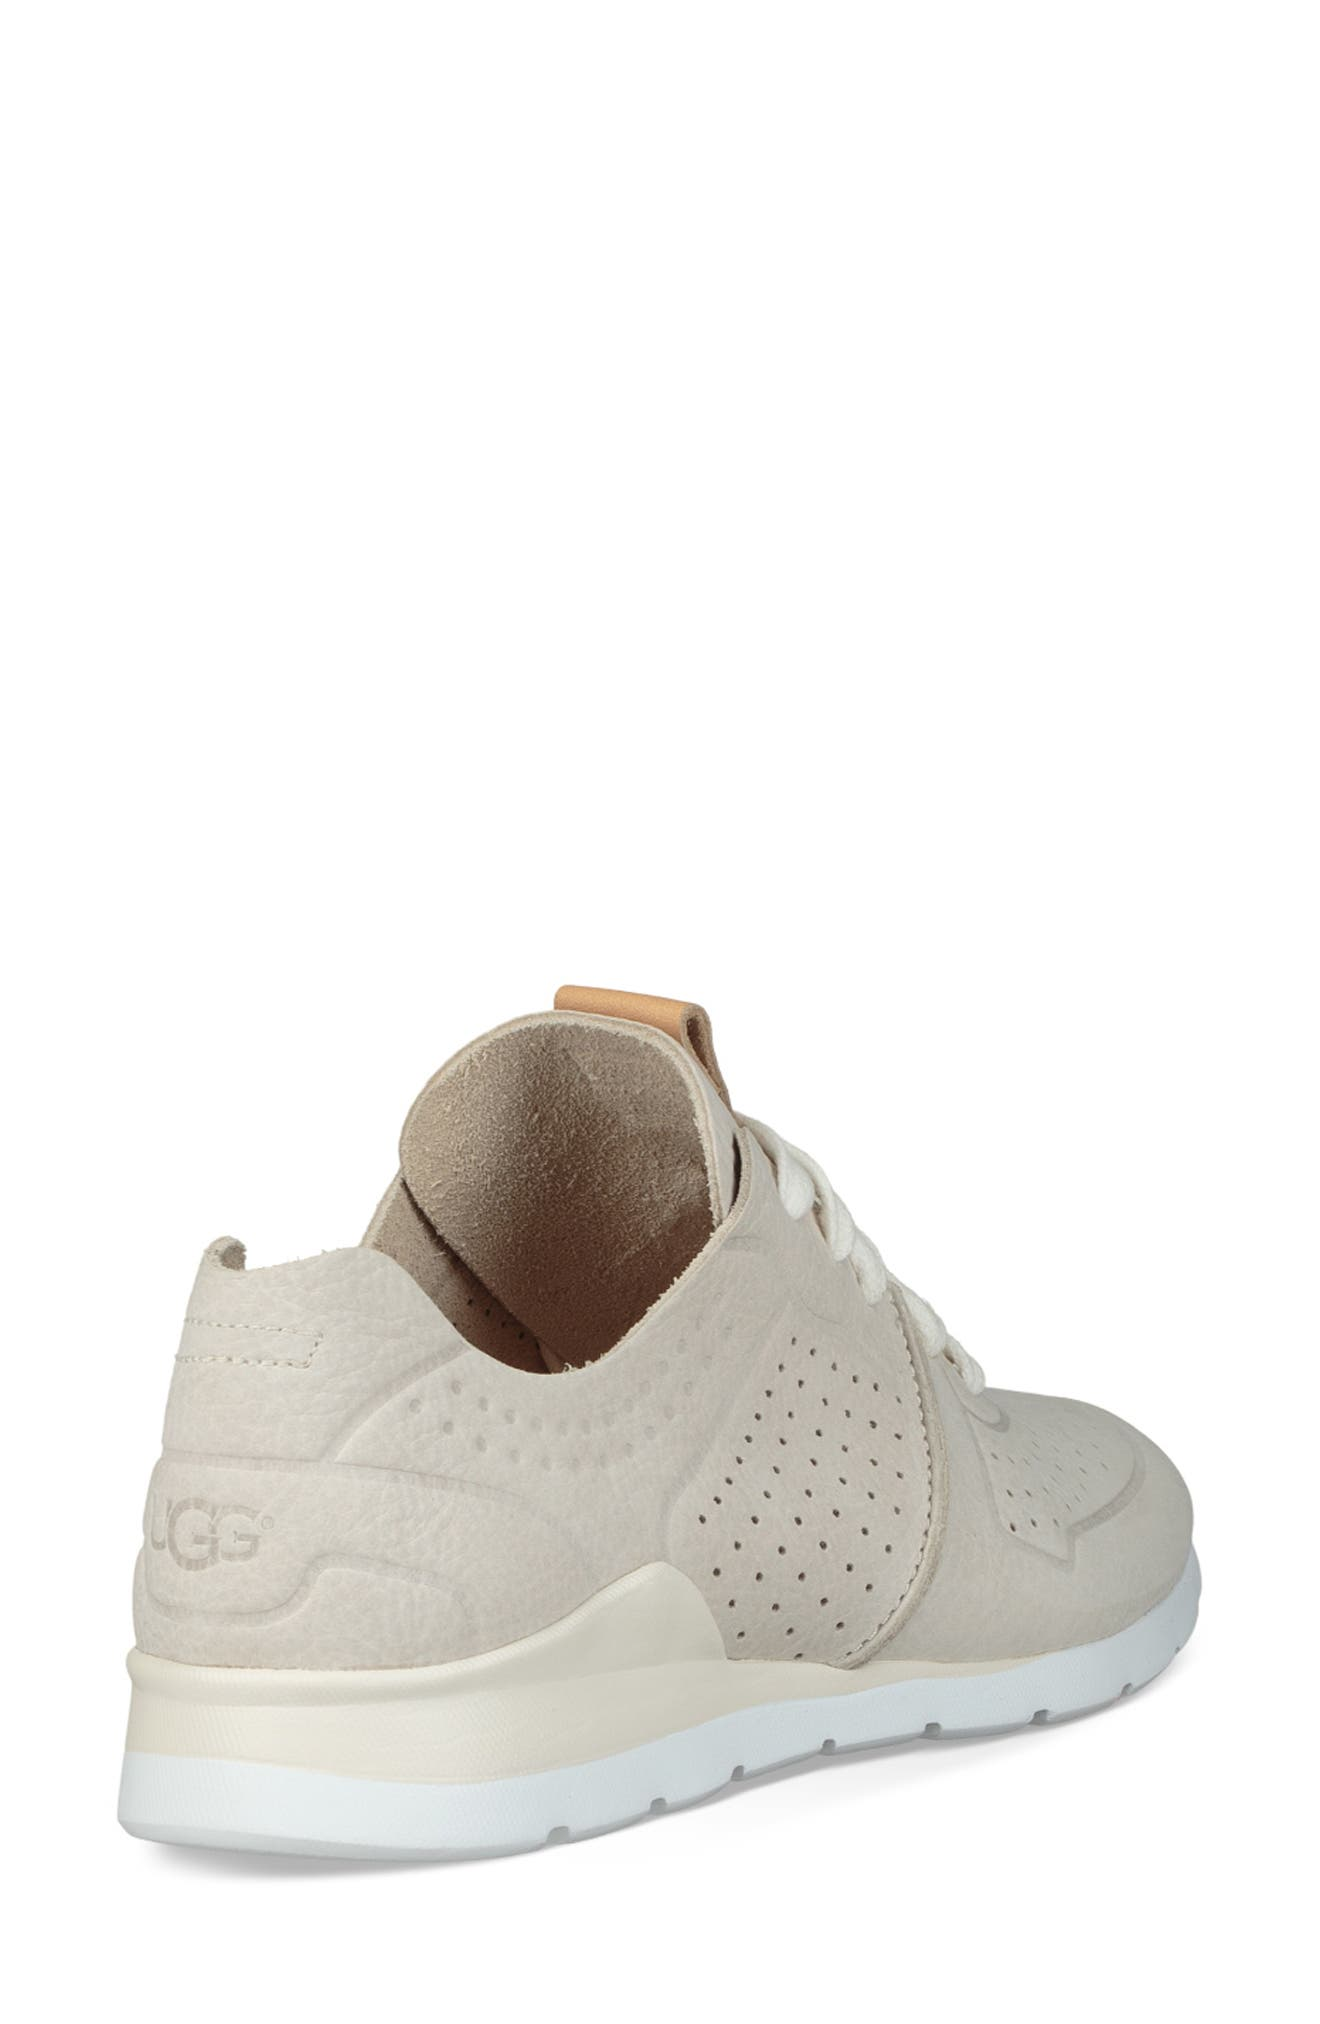 UGG<SUP>®</SUP>, Tye Sneaker, Alternate thumbnail 2, color, COCONUT MILK LEATHER